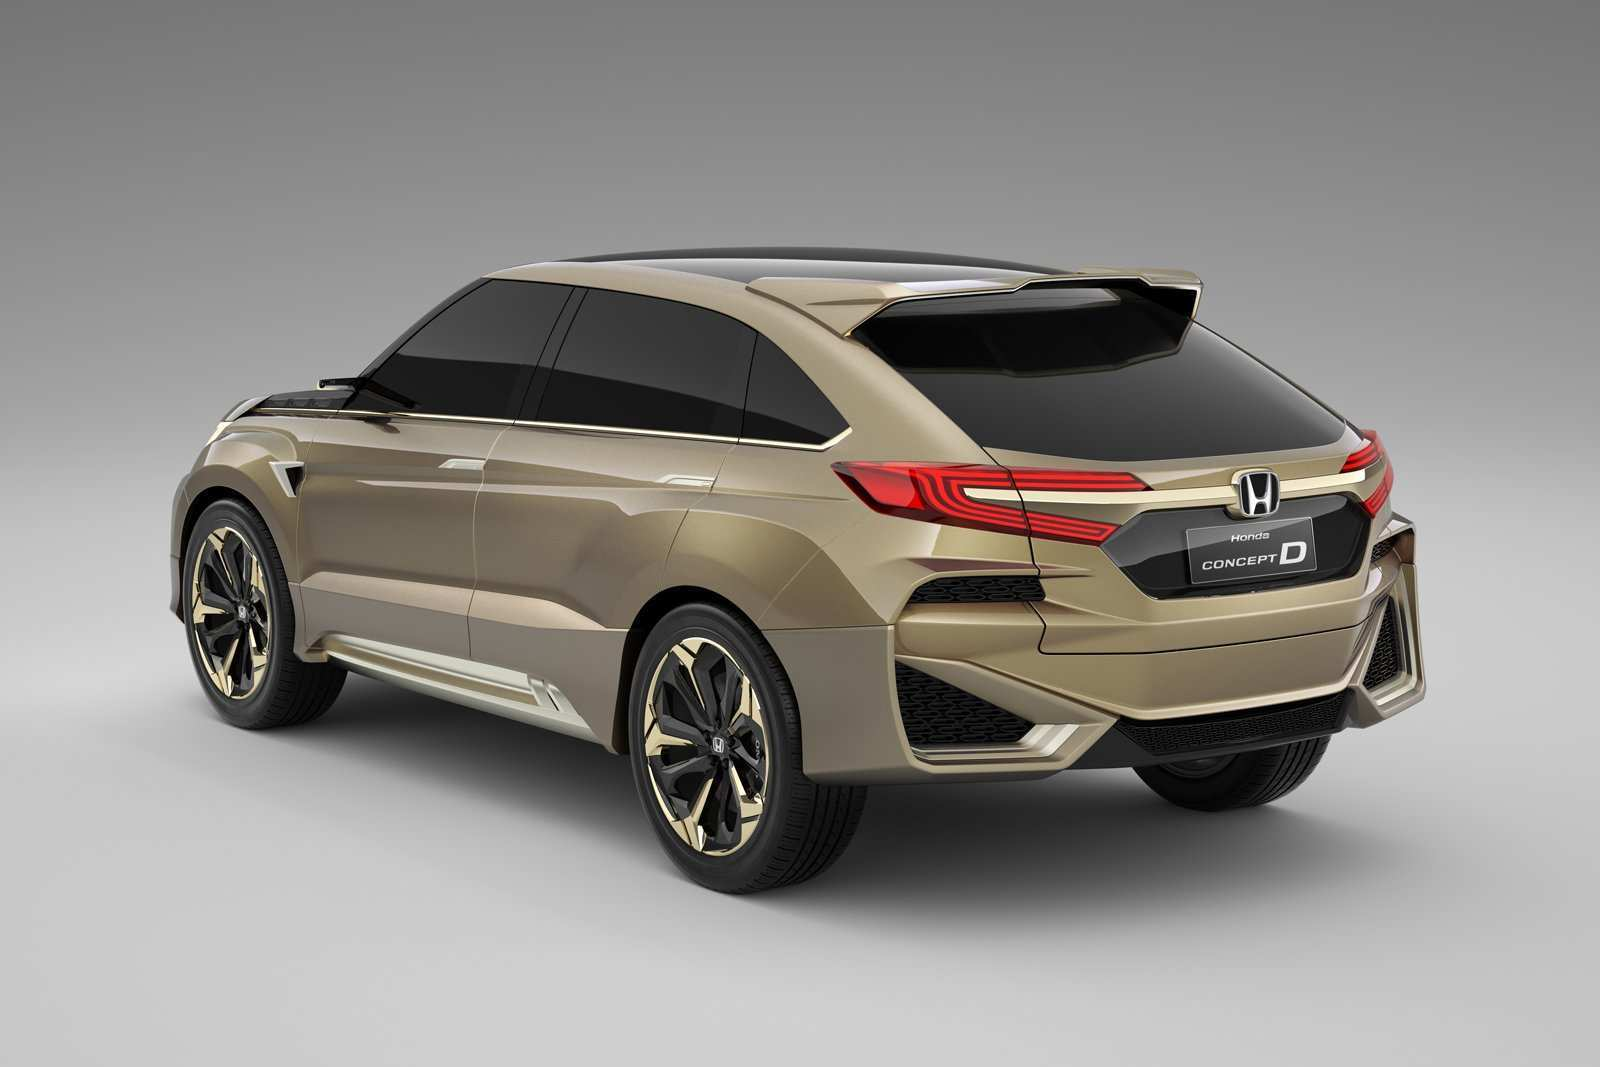 66 The Acura Mdx 2020 New Model Images